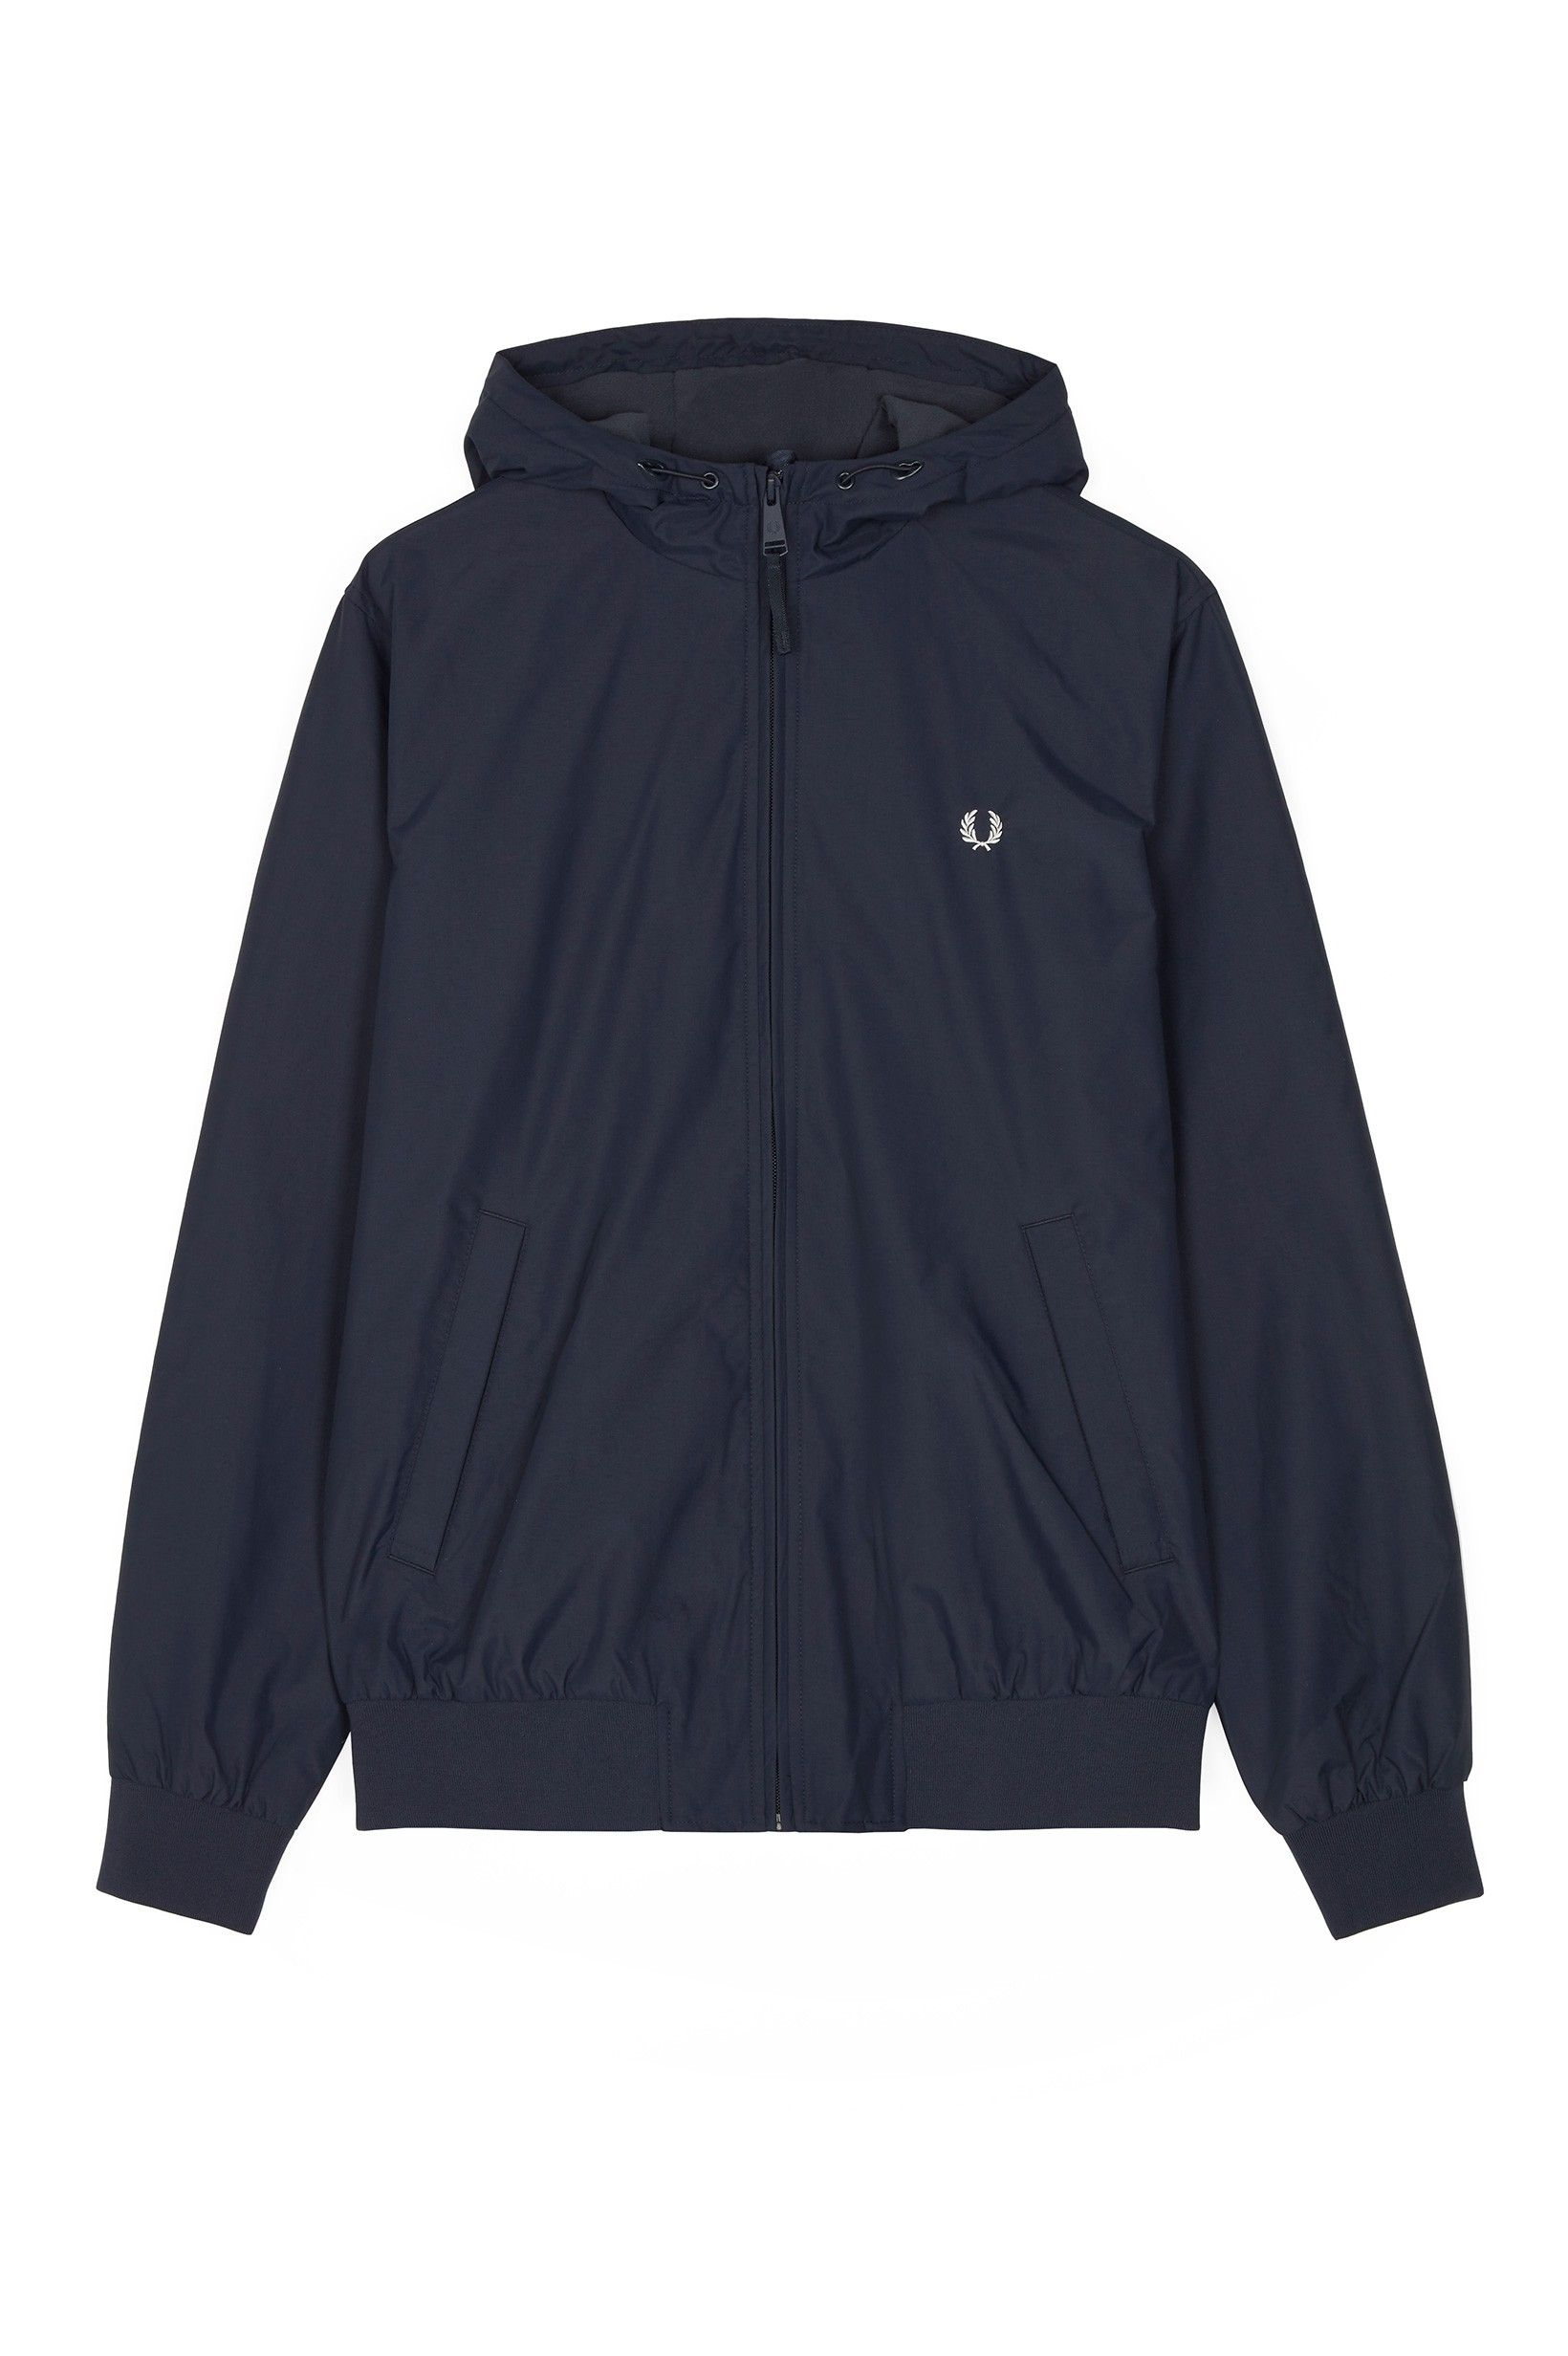 d9c7759f0 Hooded Brentham Jacket - Dark Airforce